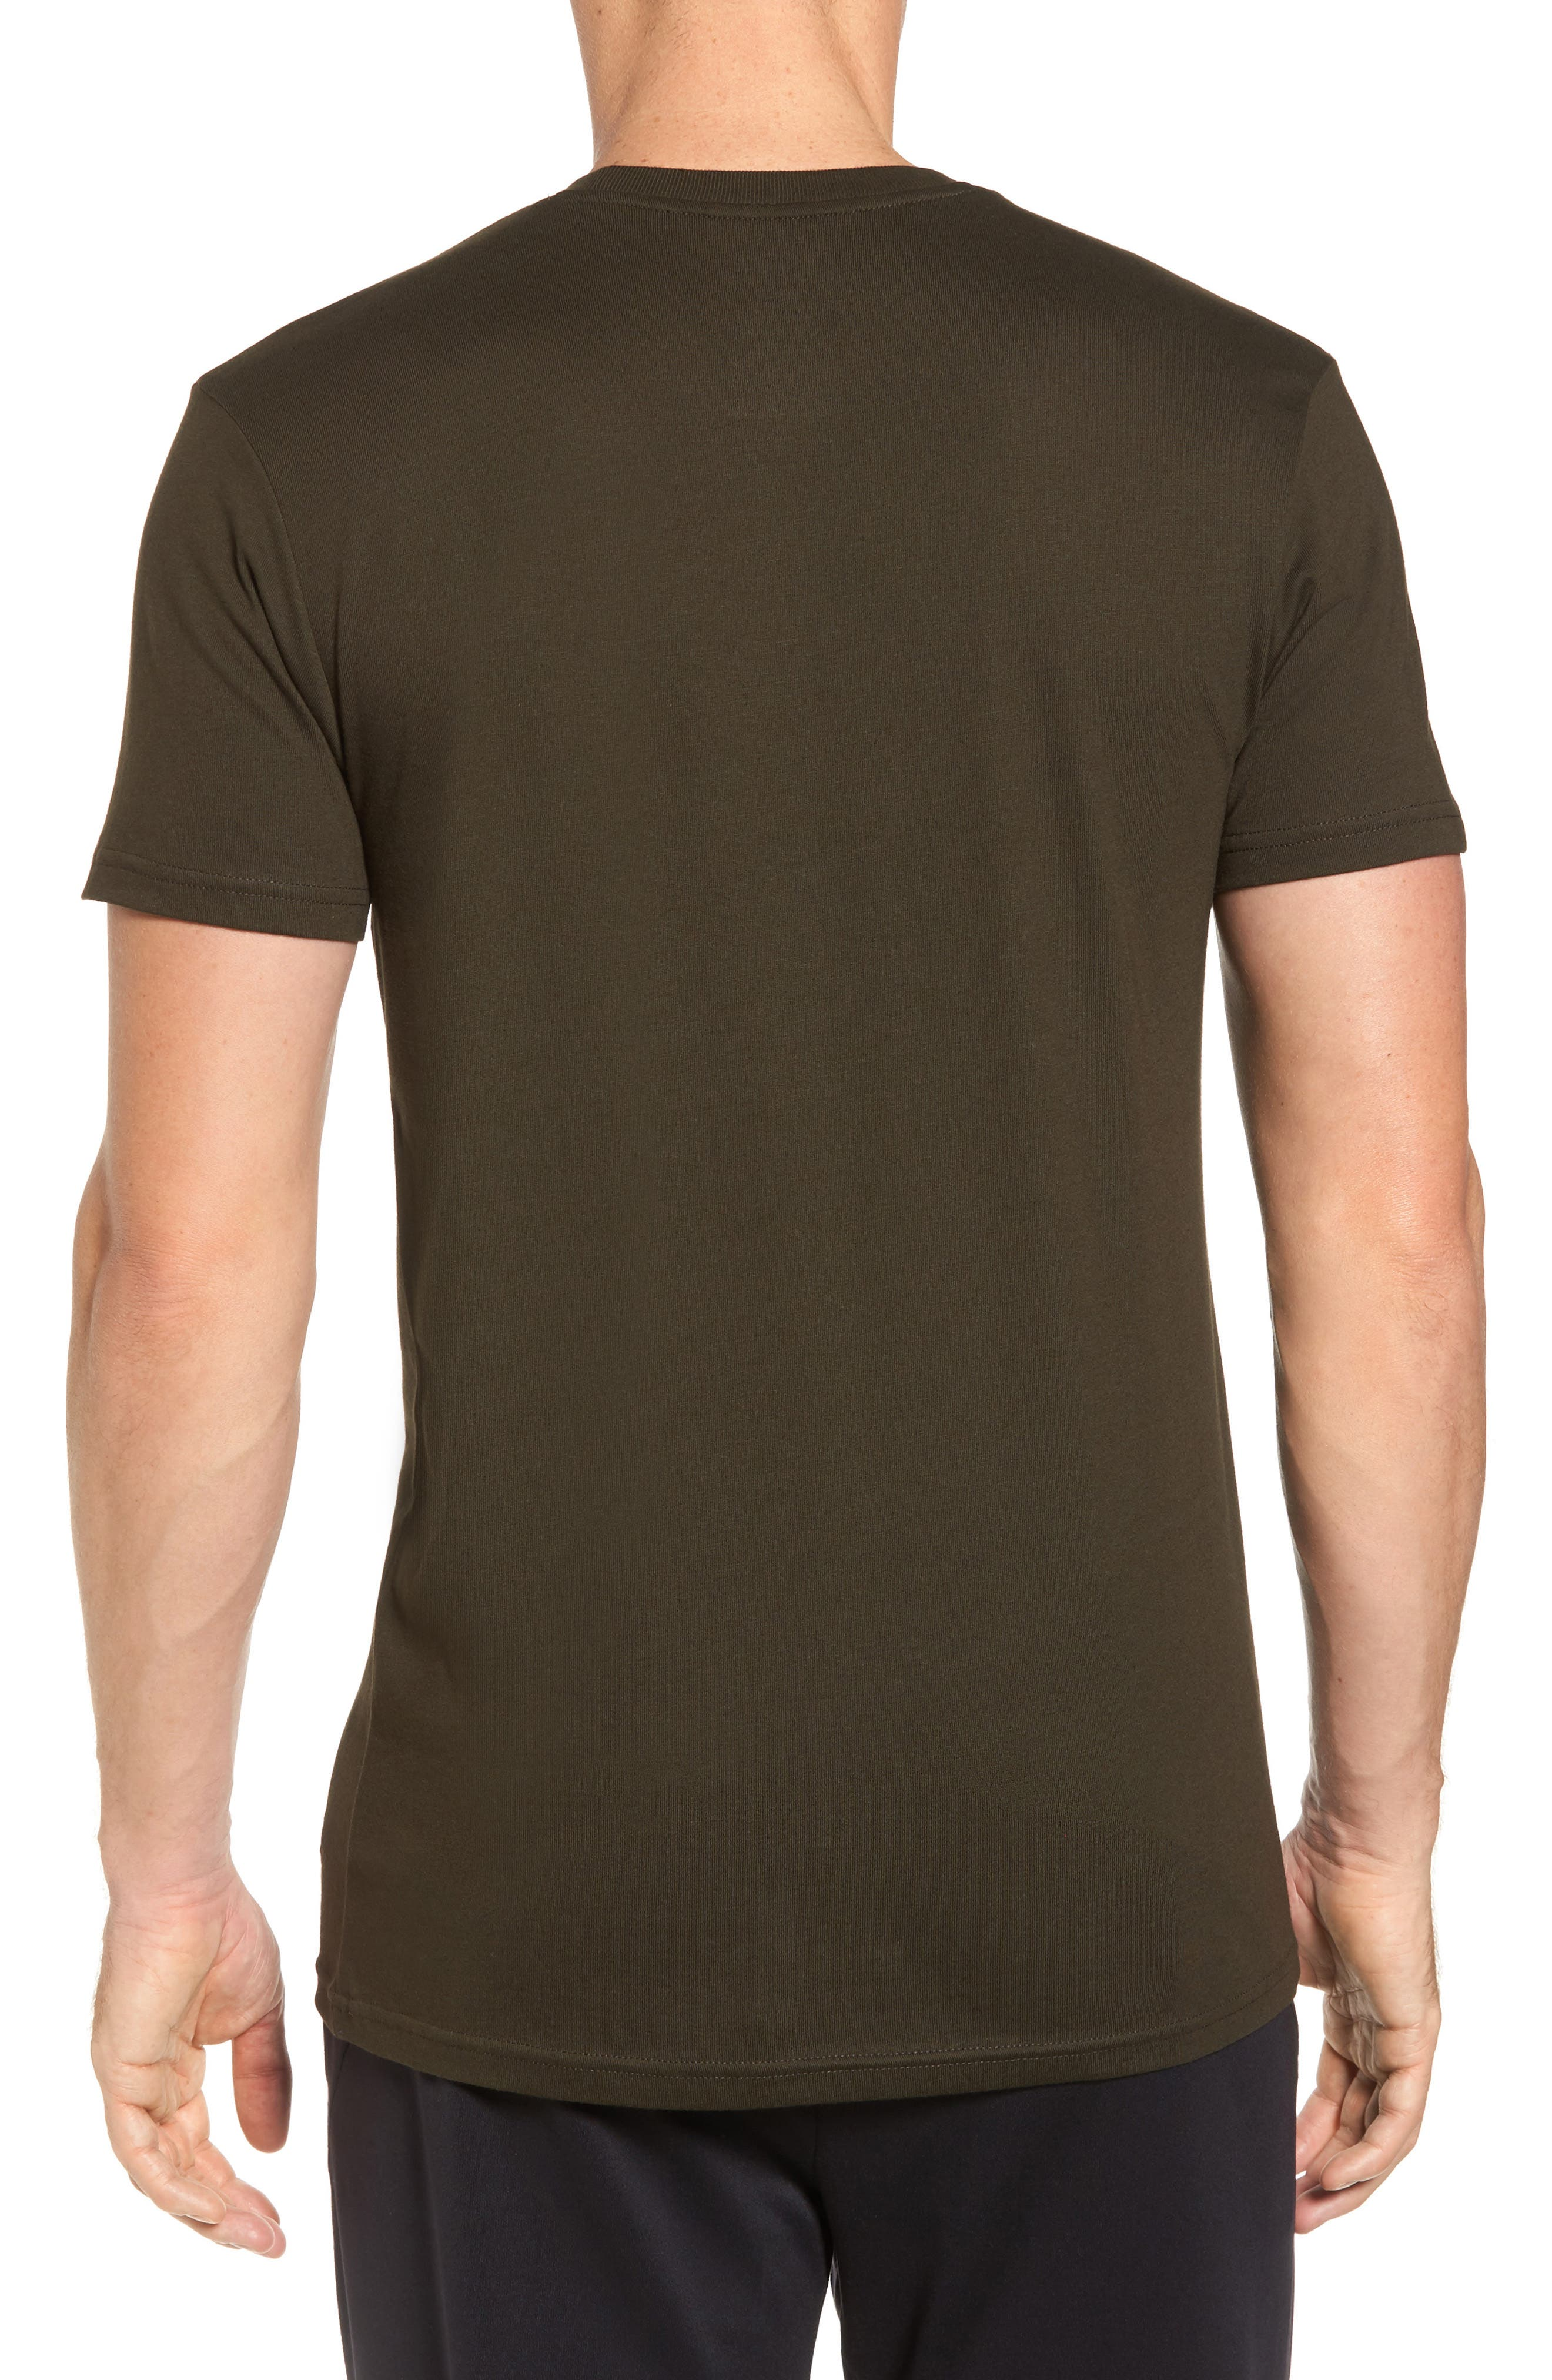 Supreme Comfort Short Sleeve Pajama Top,                             Alternate thumbnail 2, color,                             Rich Olive/ Chic Cream